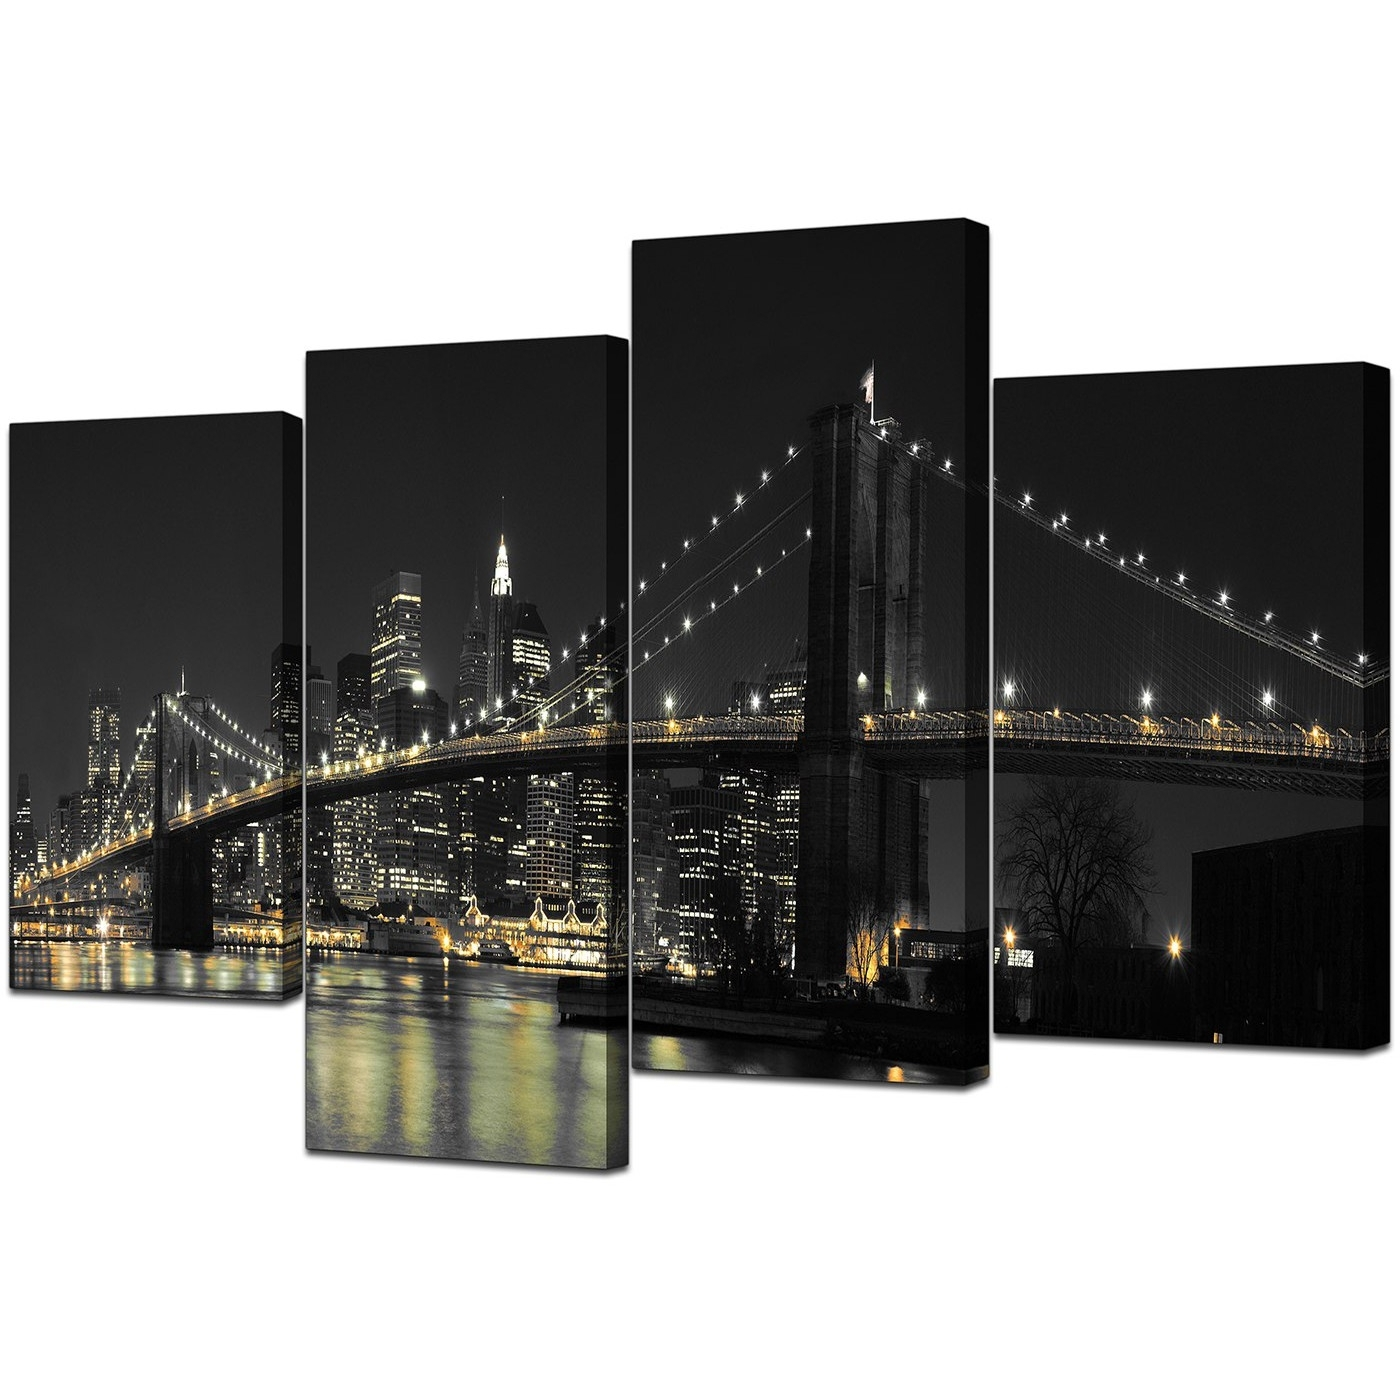 New York Wall Art Regarding 2017 Canvas Wall Art Of New York For Your Office – 4 Part (View 6 of 15)